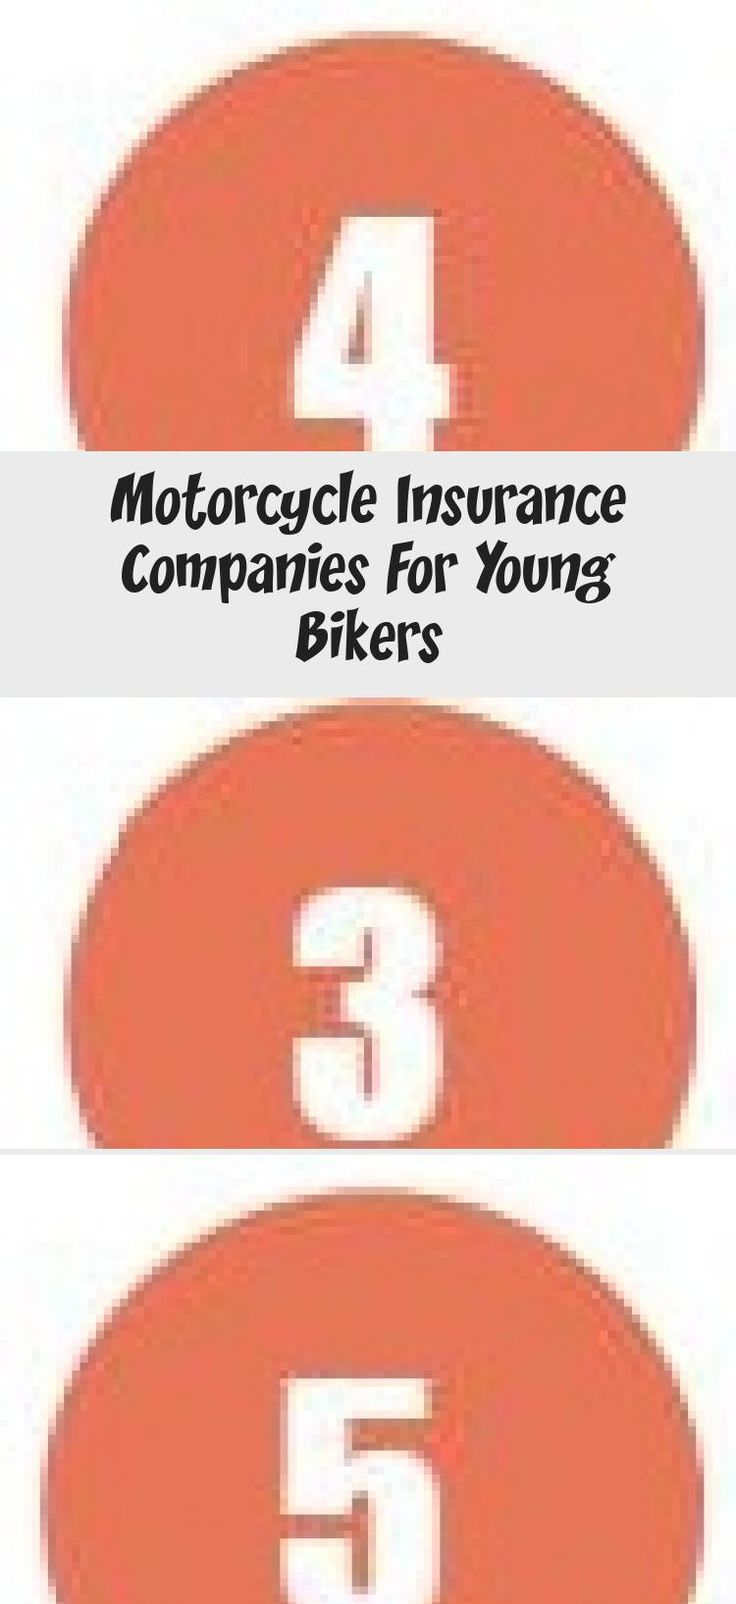 Motorcycle insurance companies for young bikers insurance